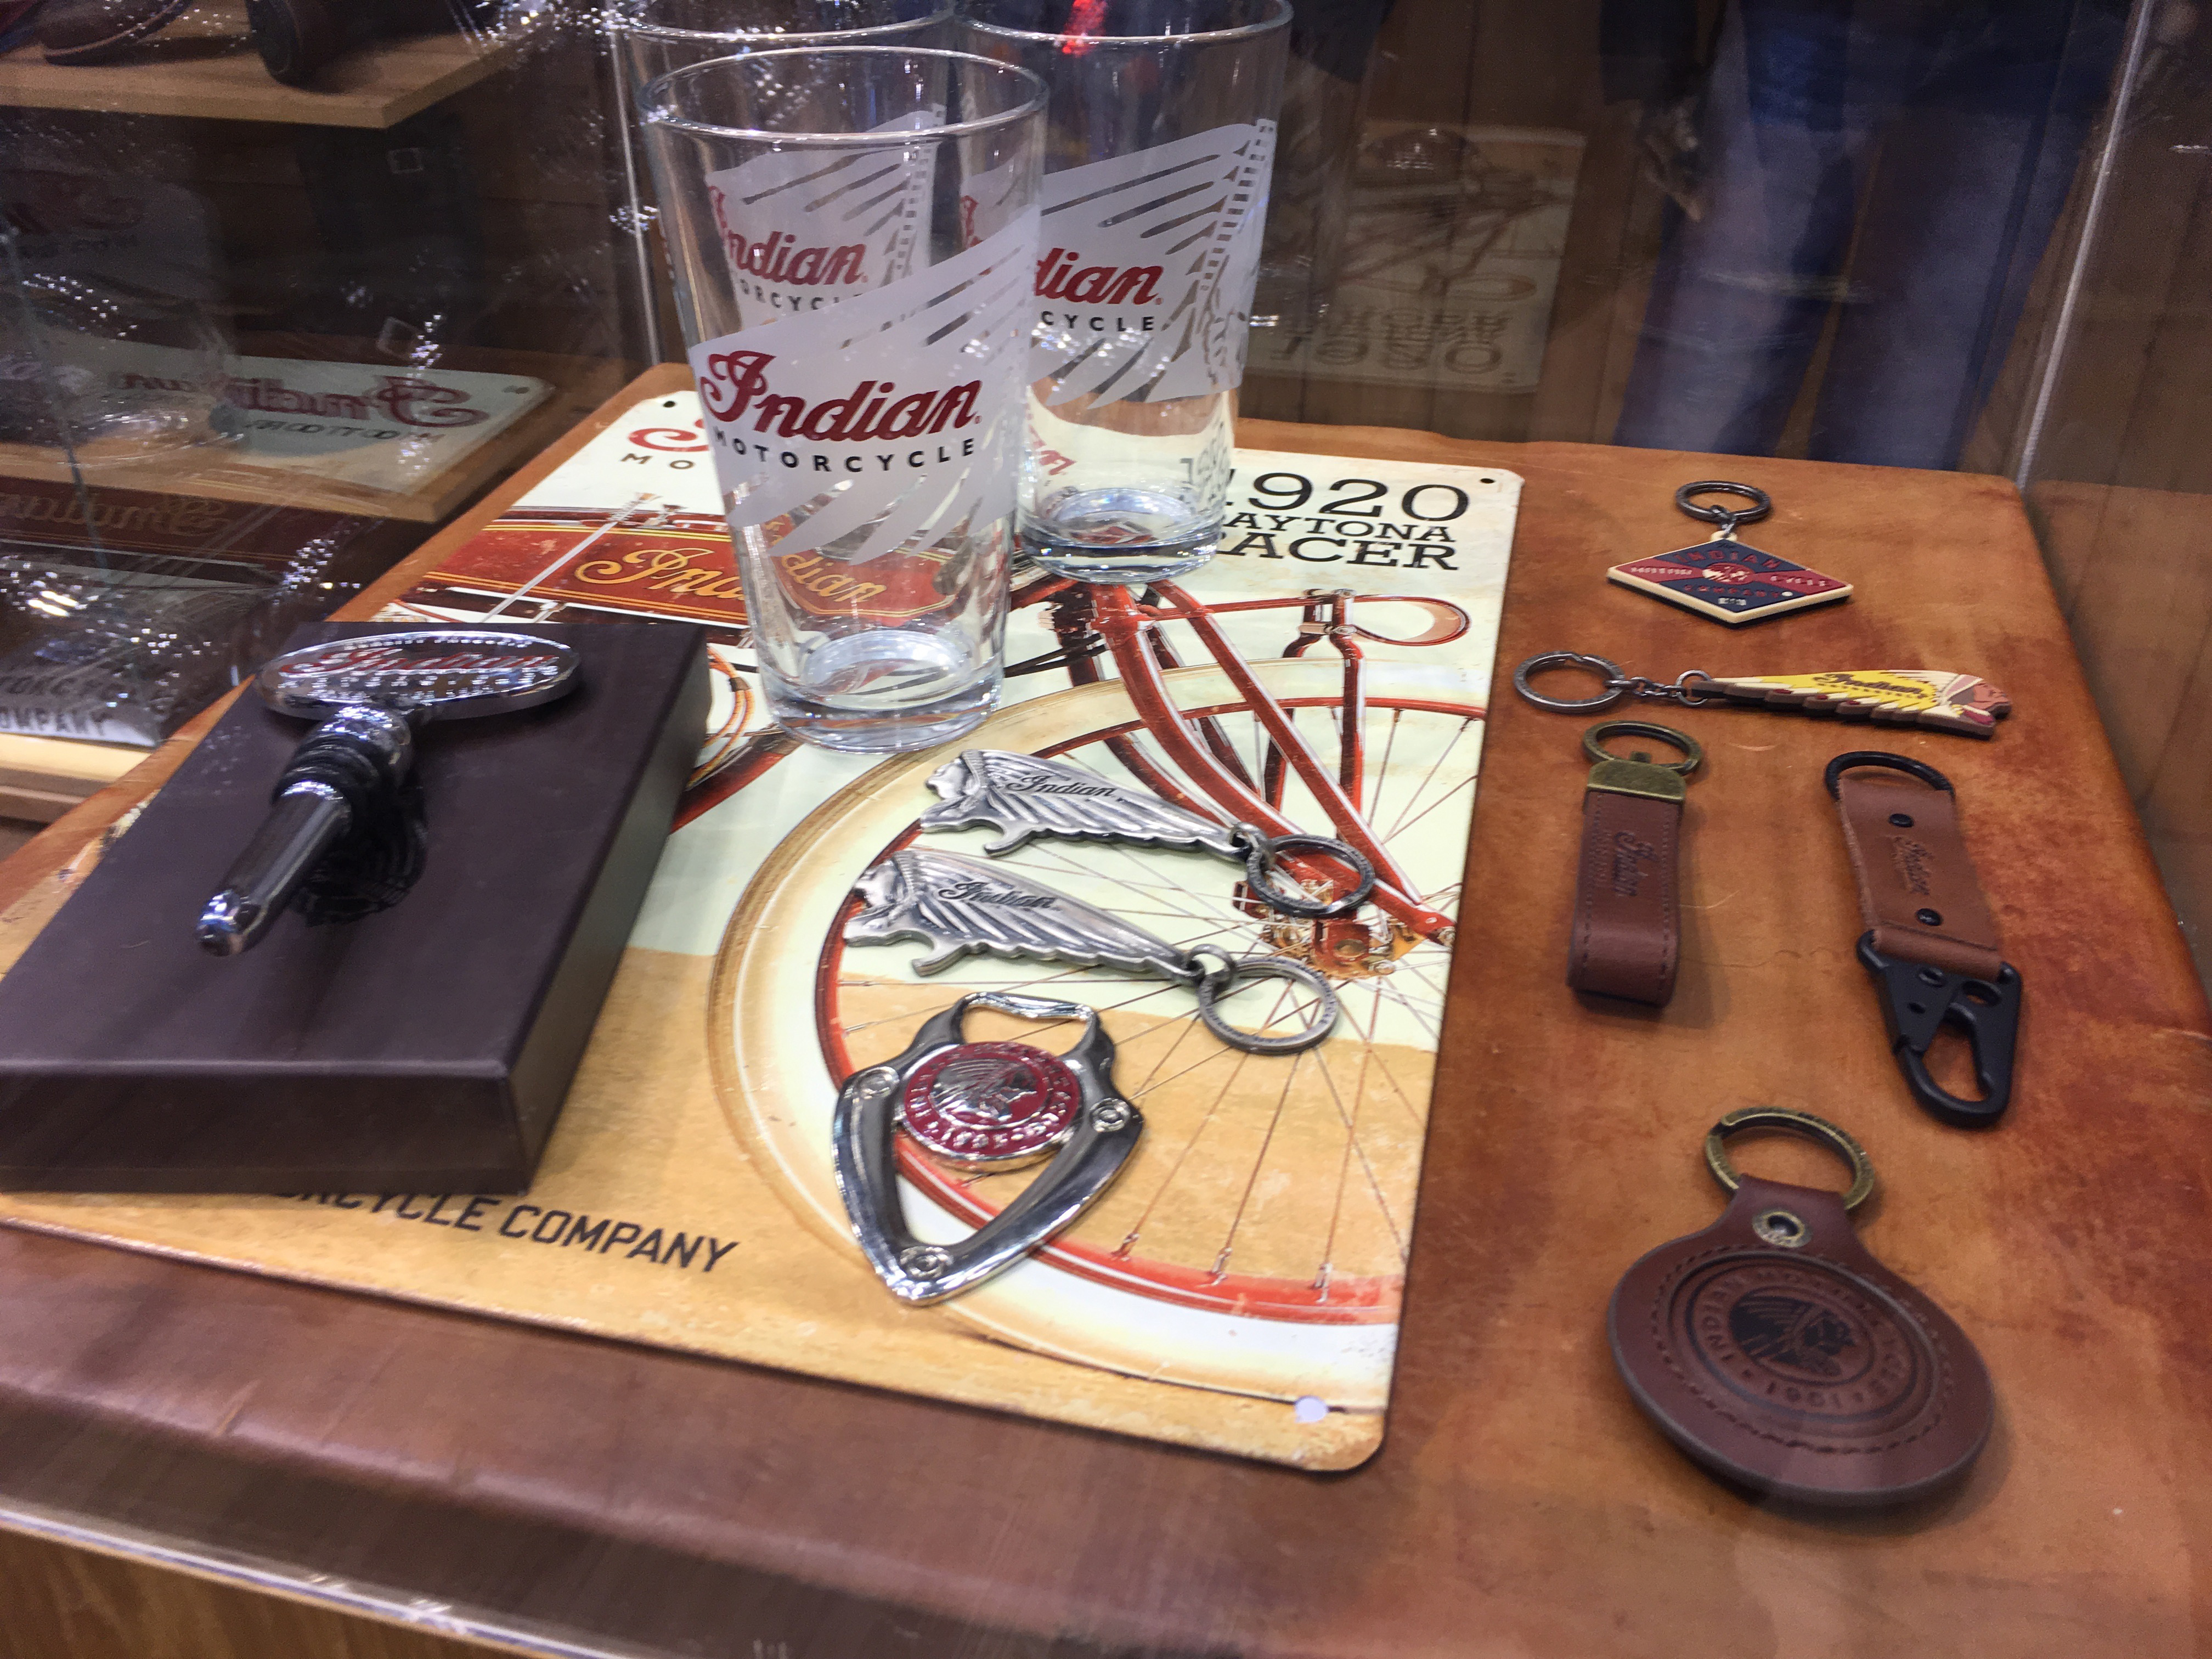 Indian Motorcycle Shows Huge Christmas Gifts Collection - autoevolution